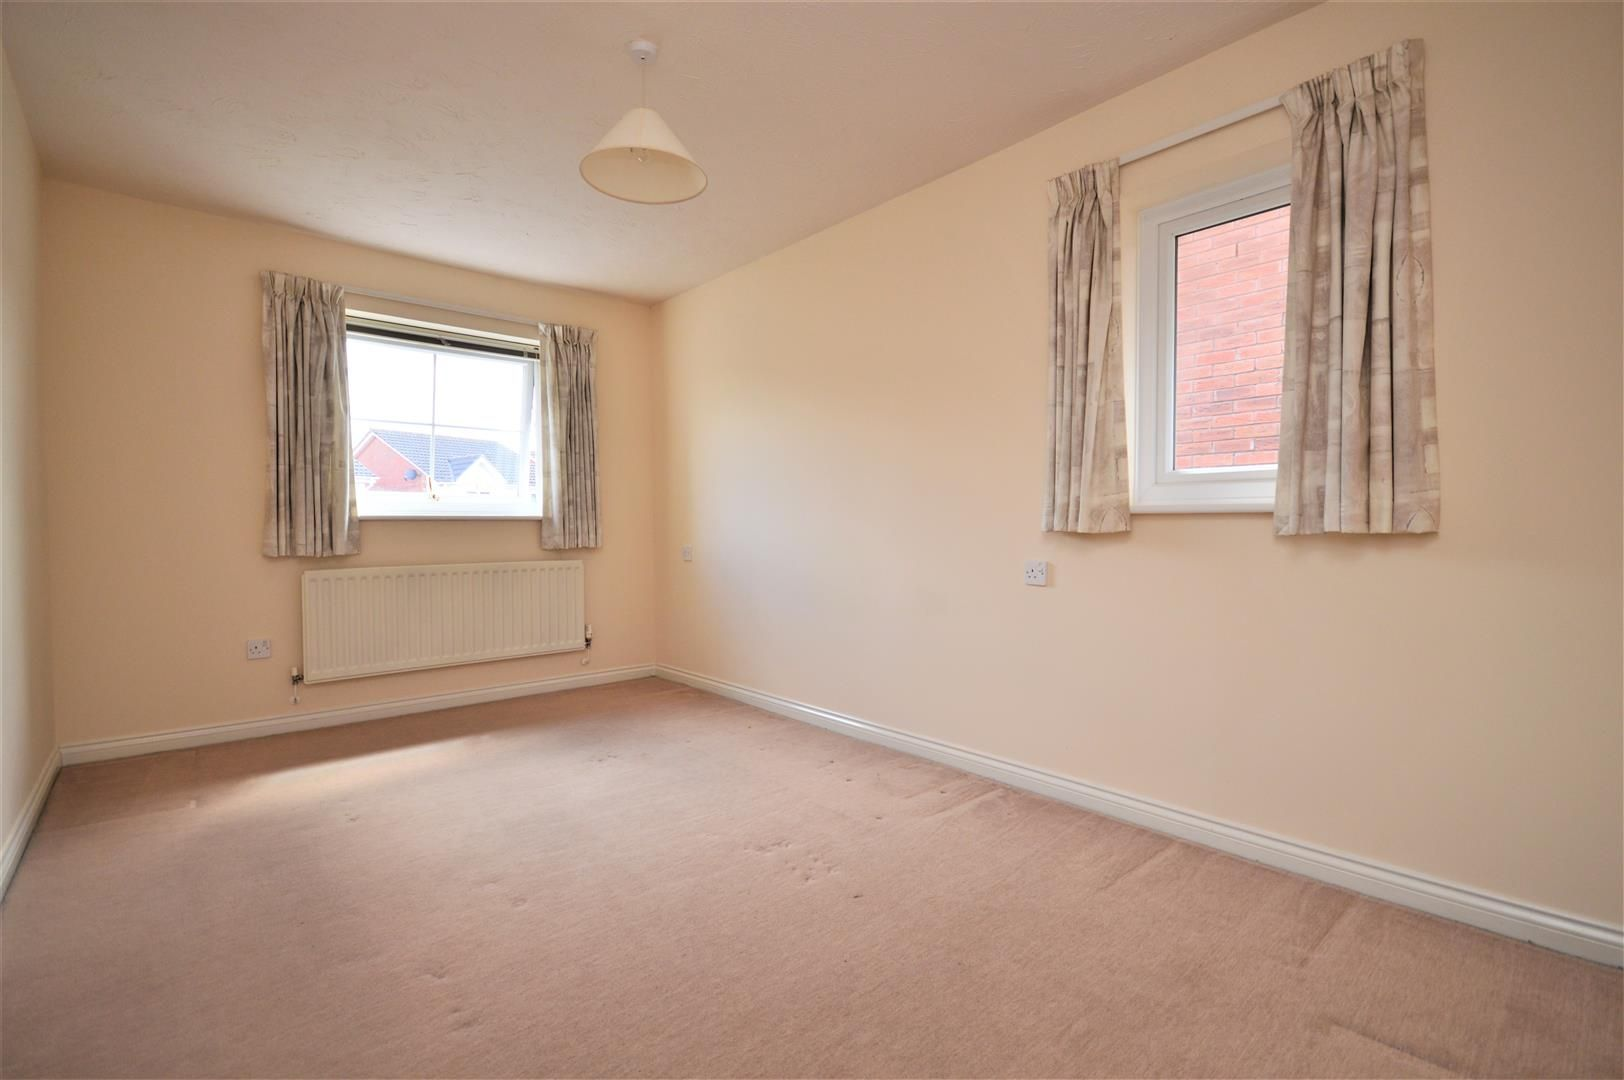 4 bed detached for sale in Belmont  - Property Image 11